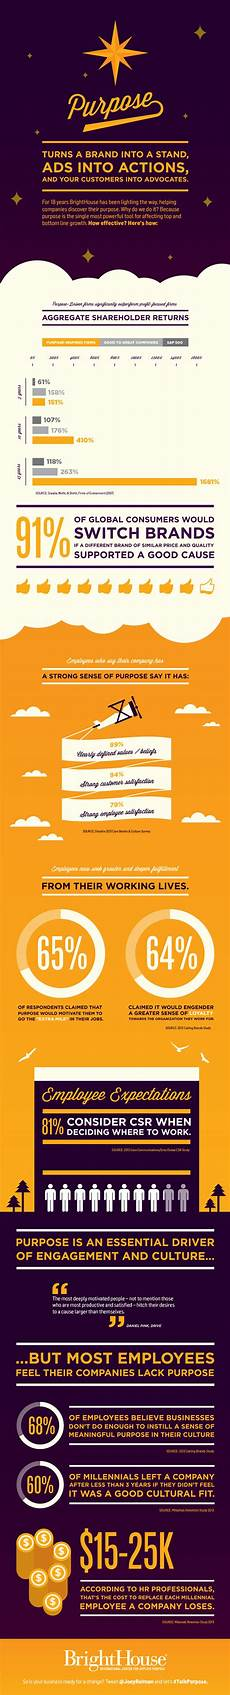 power of purpose infographic brighthouse home of purpose